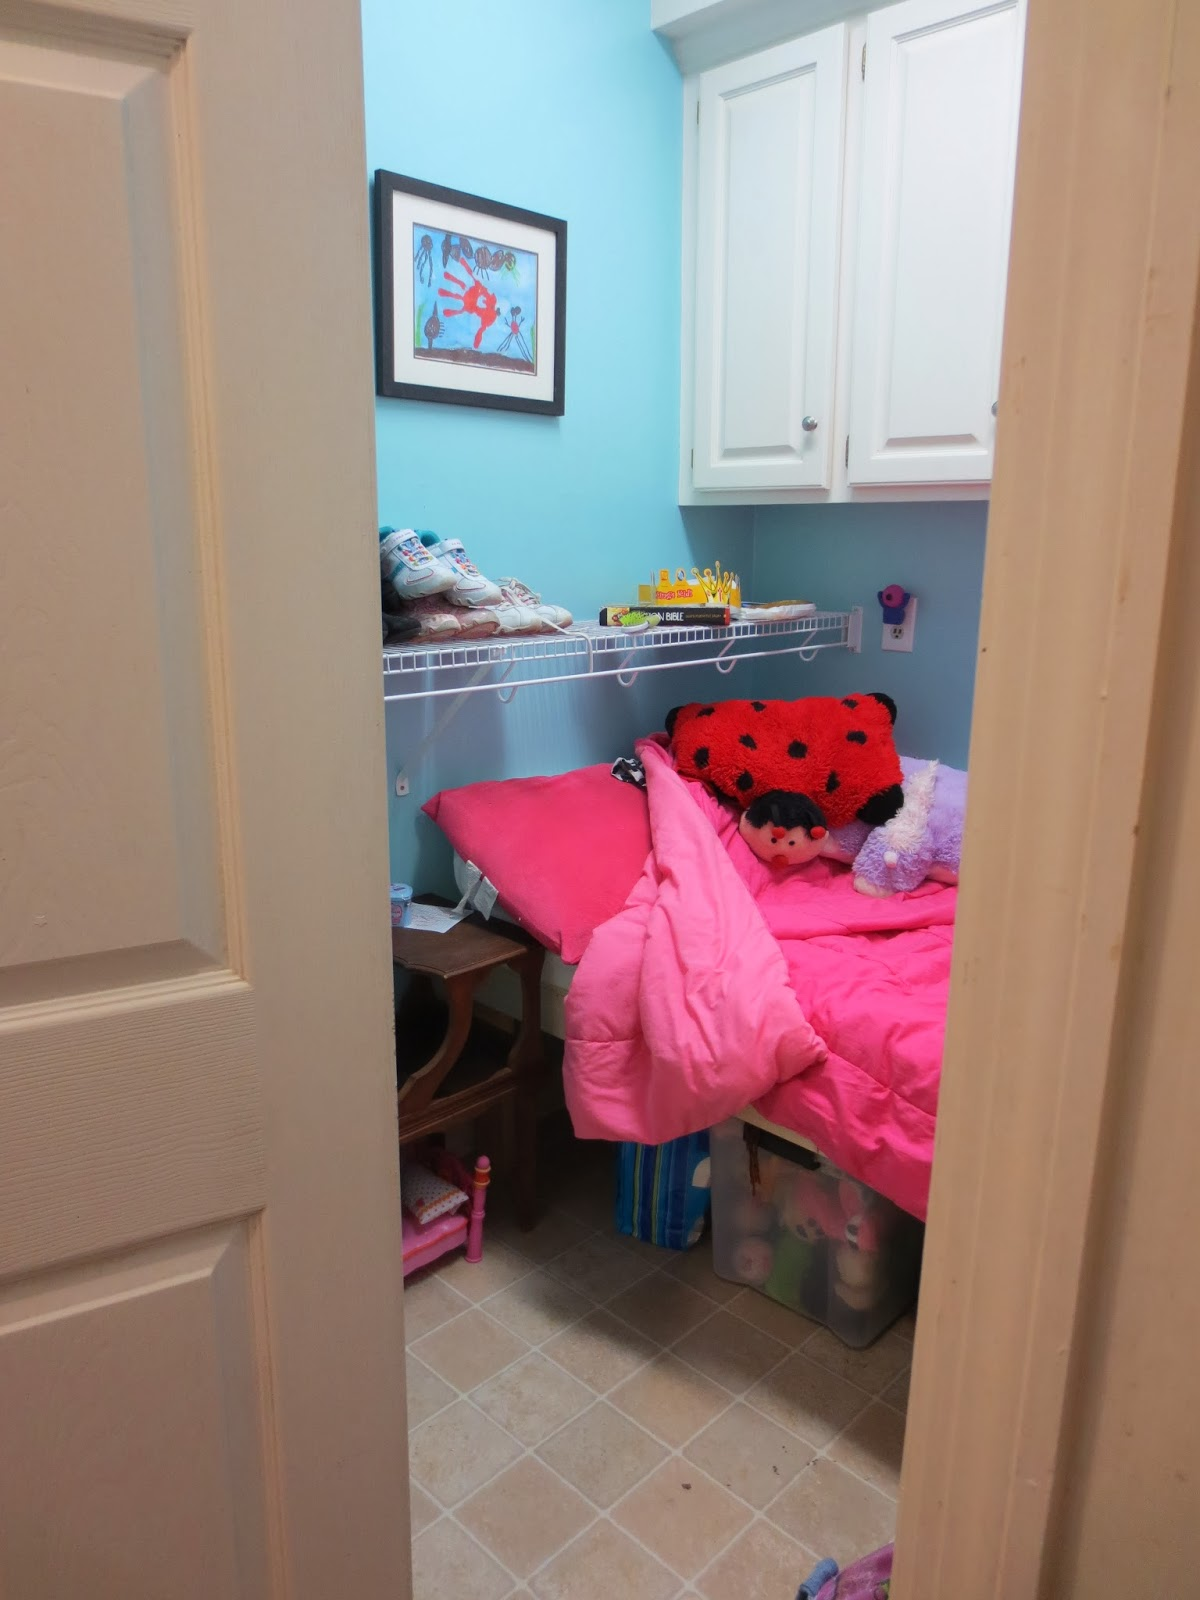 Room in a Closet      Again. Stare if you must            Room in a Closet      Again